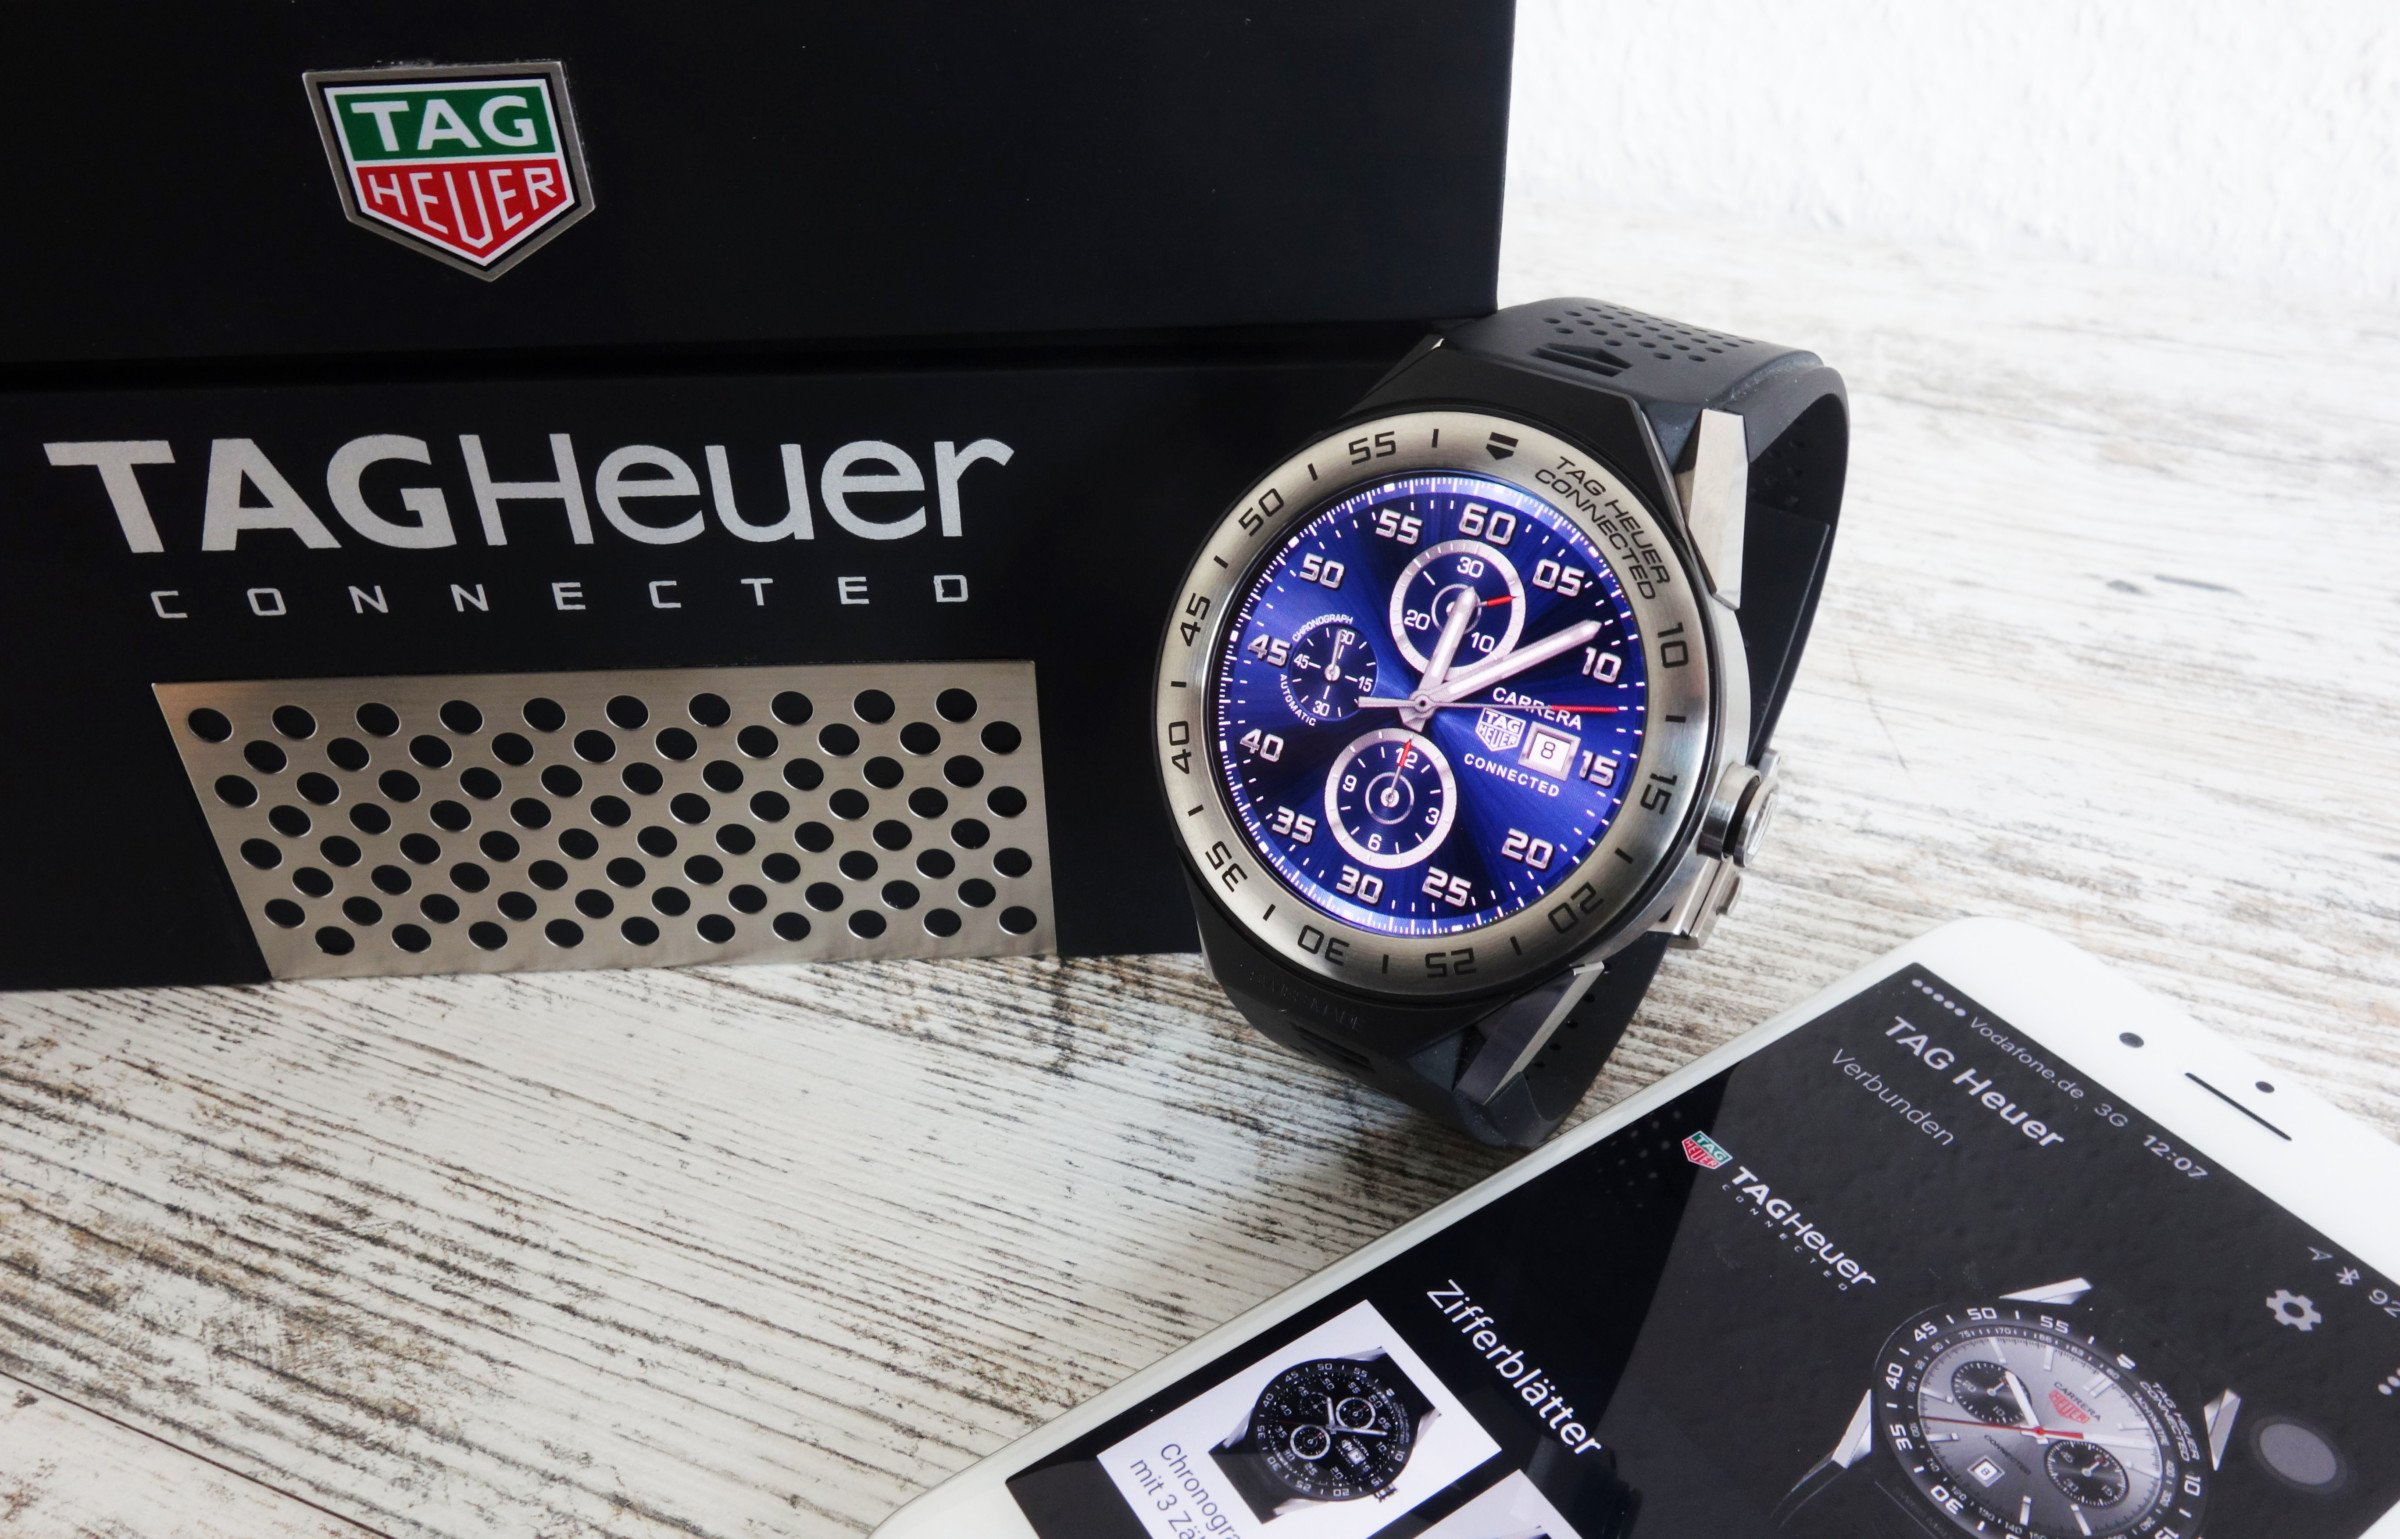 tag heuer connected modular 45 luxus smartwatch trifft iphone chrononautix. Black Bedroom Furniture Sets. Home Design Ideas